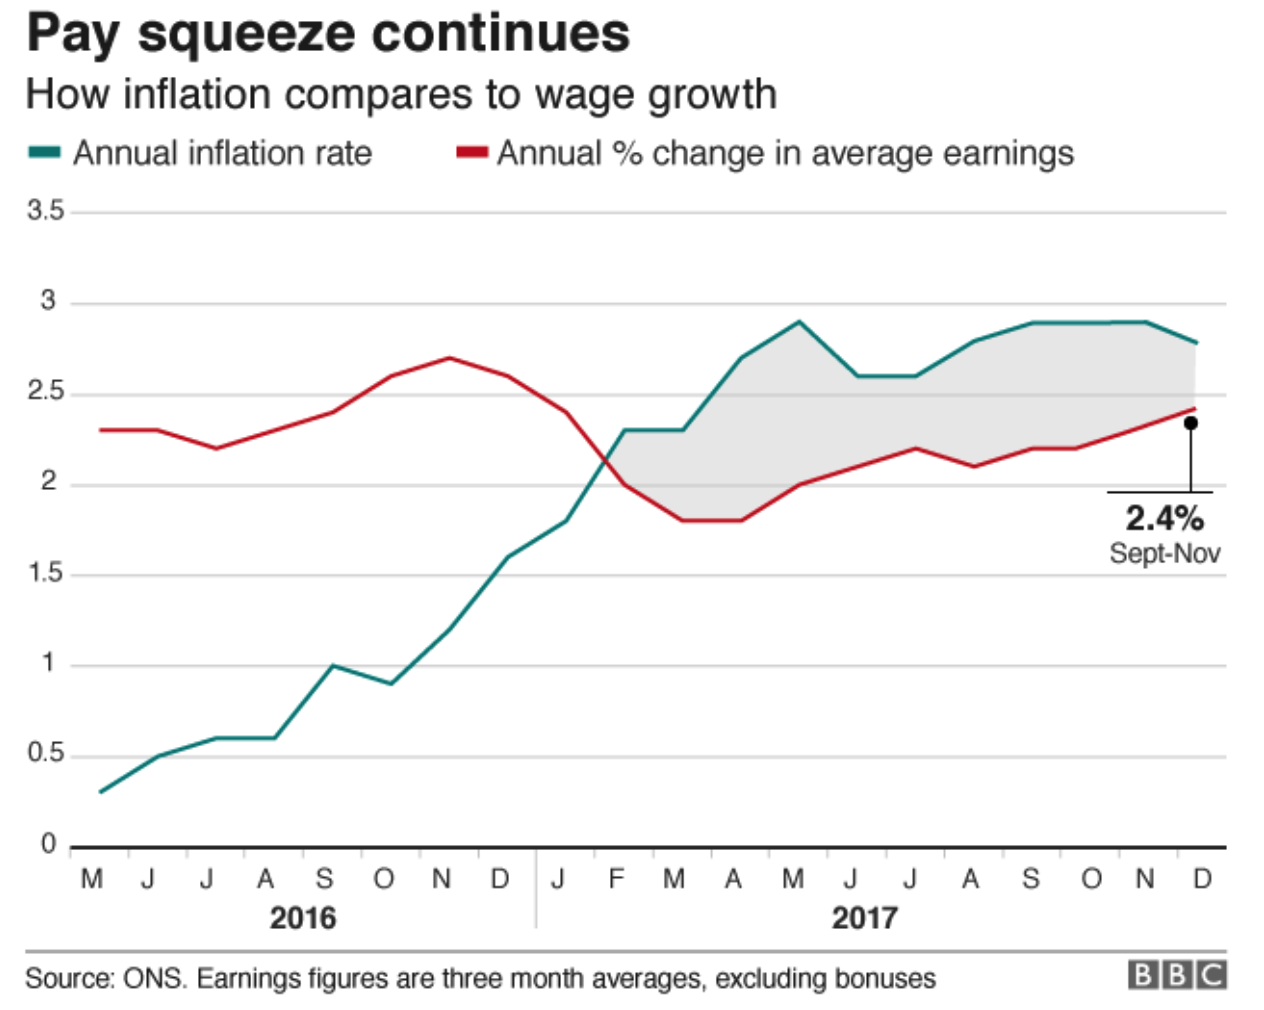 Annual Inflation Rate and Annual Change in Average Earnings, May 2016 - Dec 2017